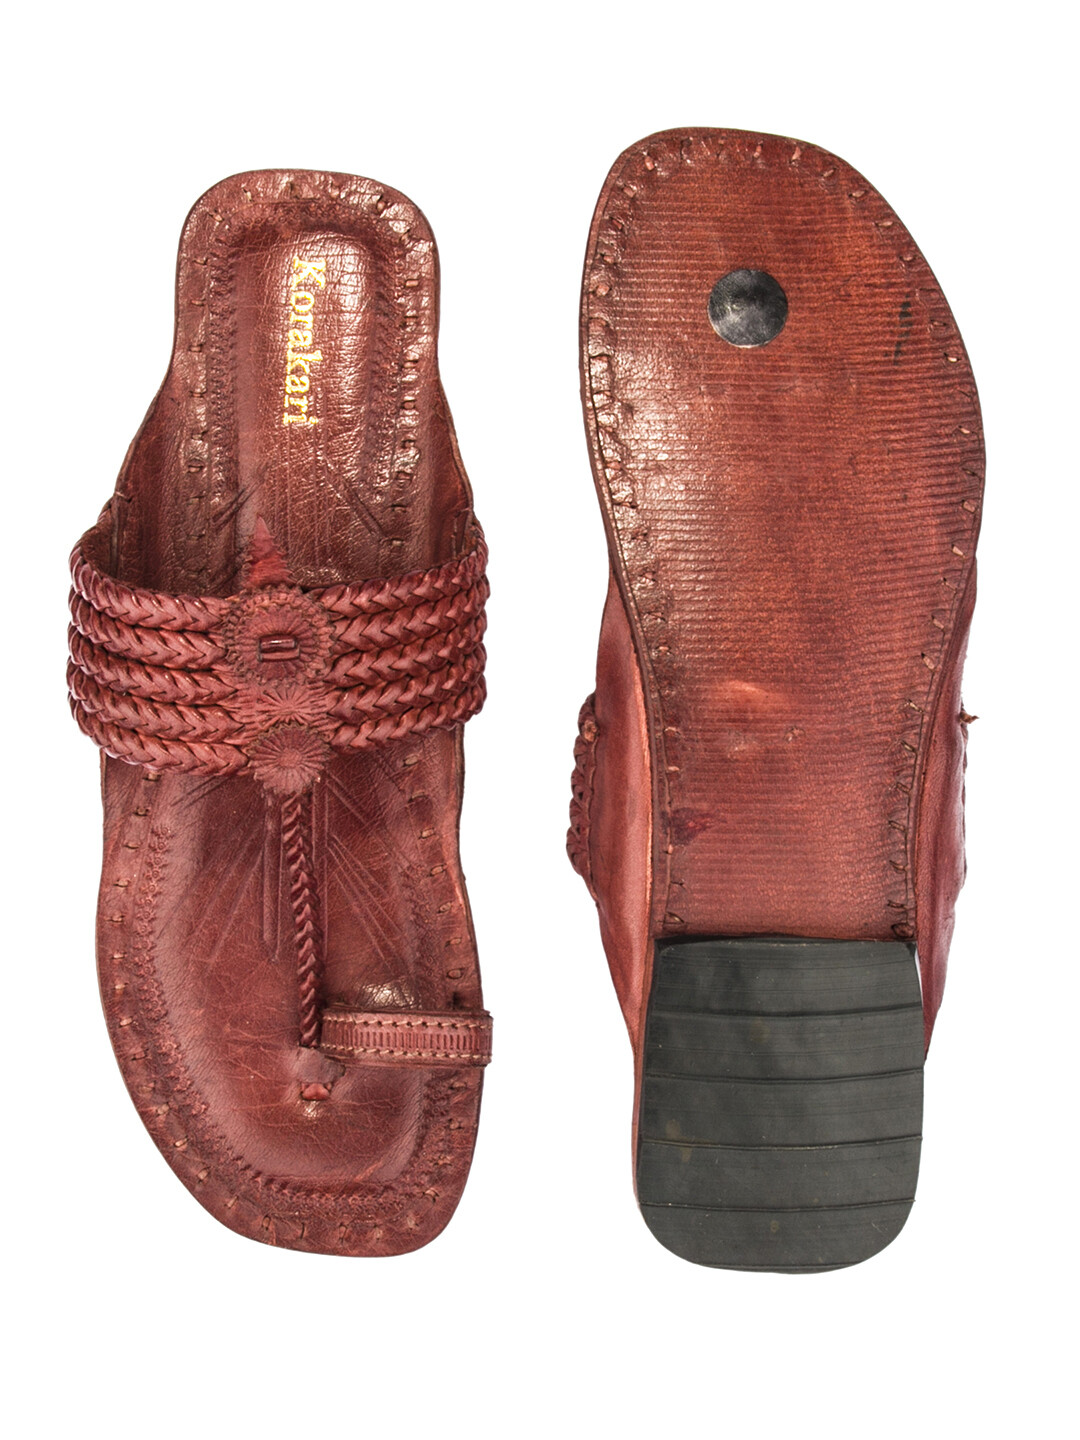 KORAKARI Dark Red Braided Pure Leather Kolhapuri Chappal For Women